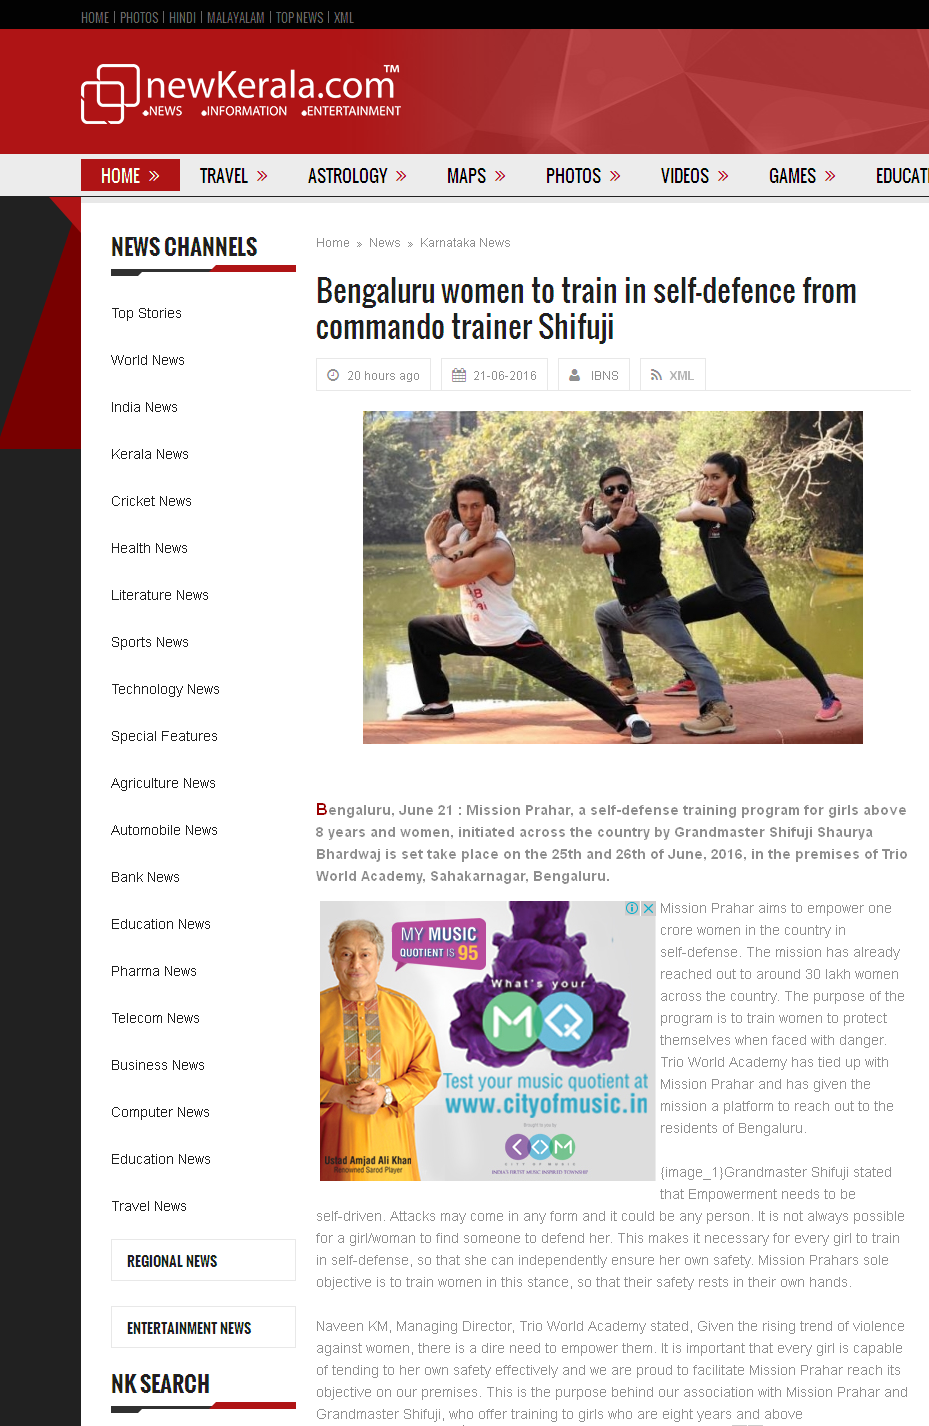 Bengaluru women to train in self-defence from commando trainer Shifuji